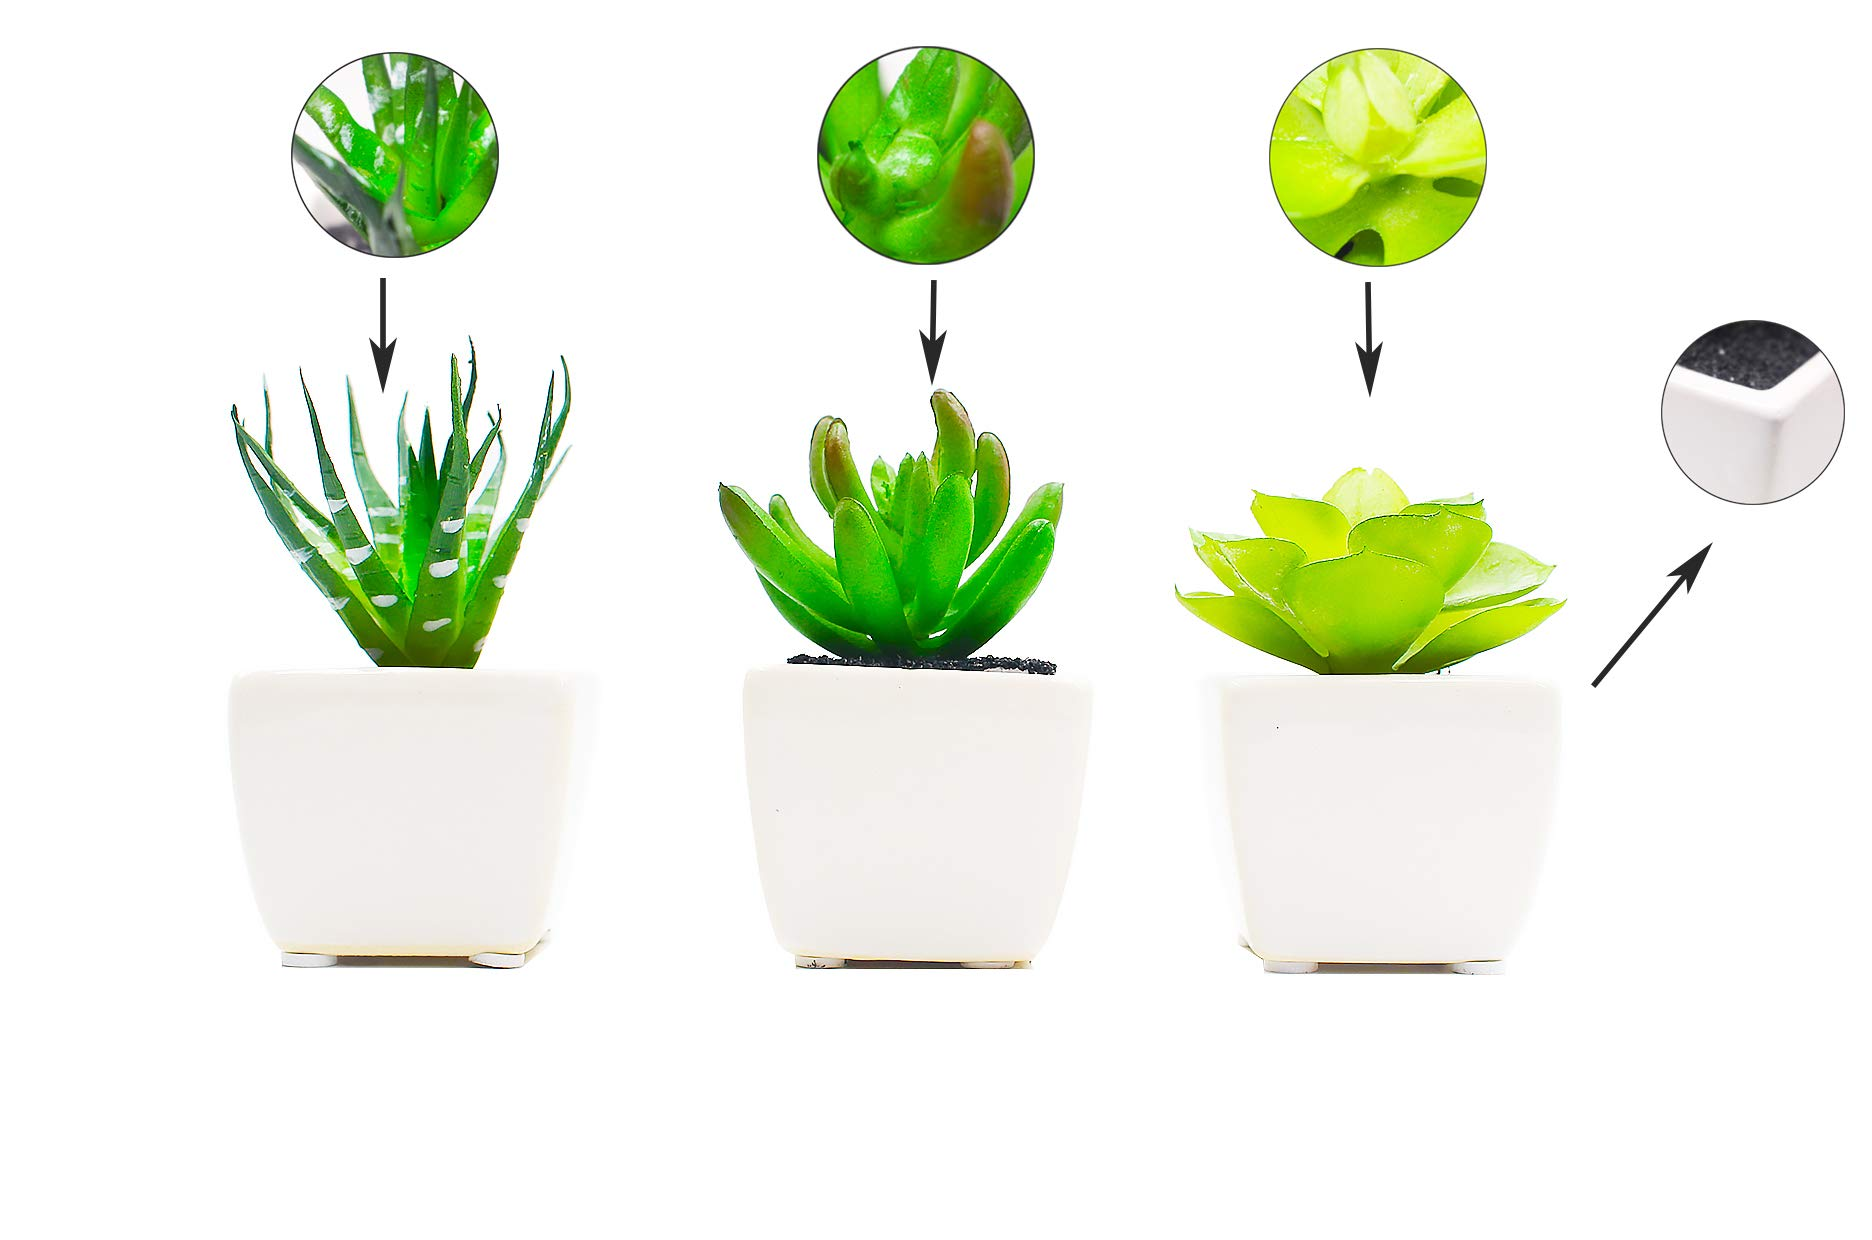 ZAZALUM Mini Artificial Potted Succulents, Set of 3 Faux Green Plants in Cube-Shape White Ceramic Pot for Home & Office Décor